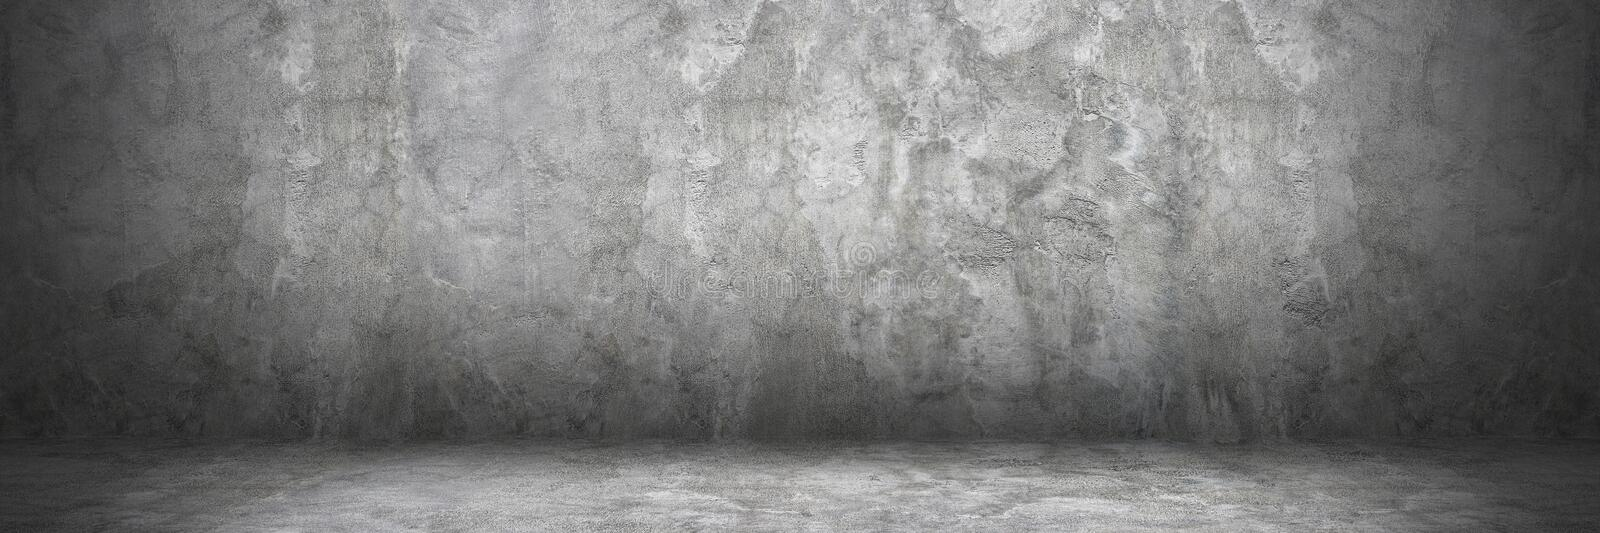 Horizontal cement wall and floor with shadow for pattern and background.  stock photo